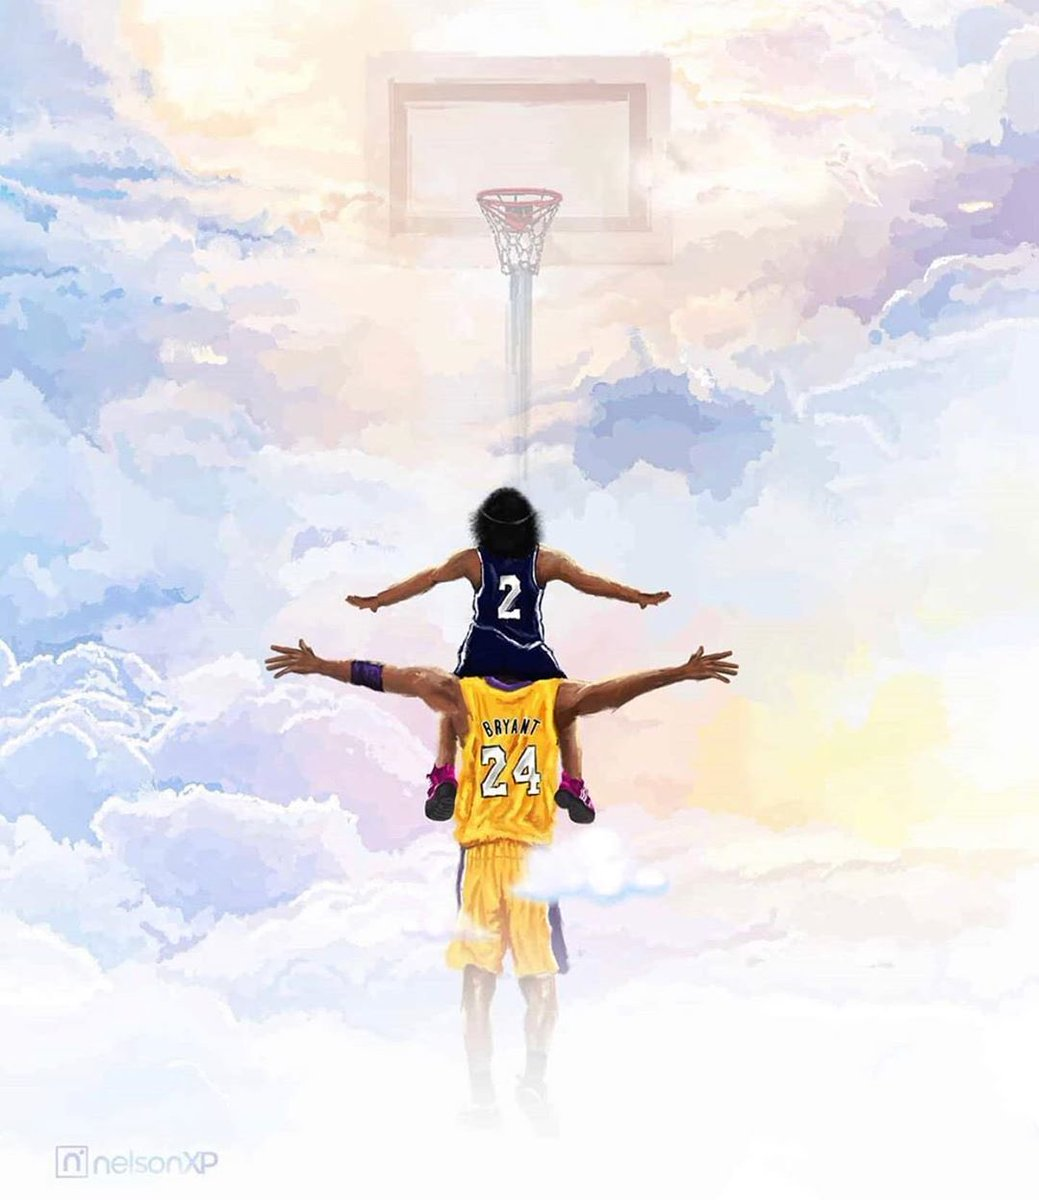 A year ago today the NBA world and the world in general lost a icon, not only from sport but in the world itself. If that wasn't enough it took one of his sweet and talented girls also, they maybe gone but they'll never be forgotten #MambaForever